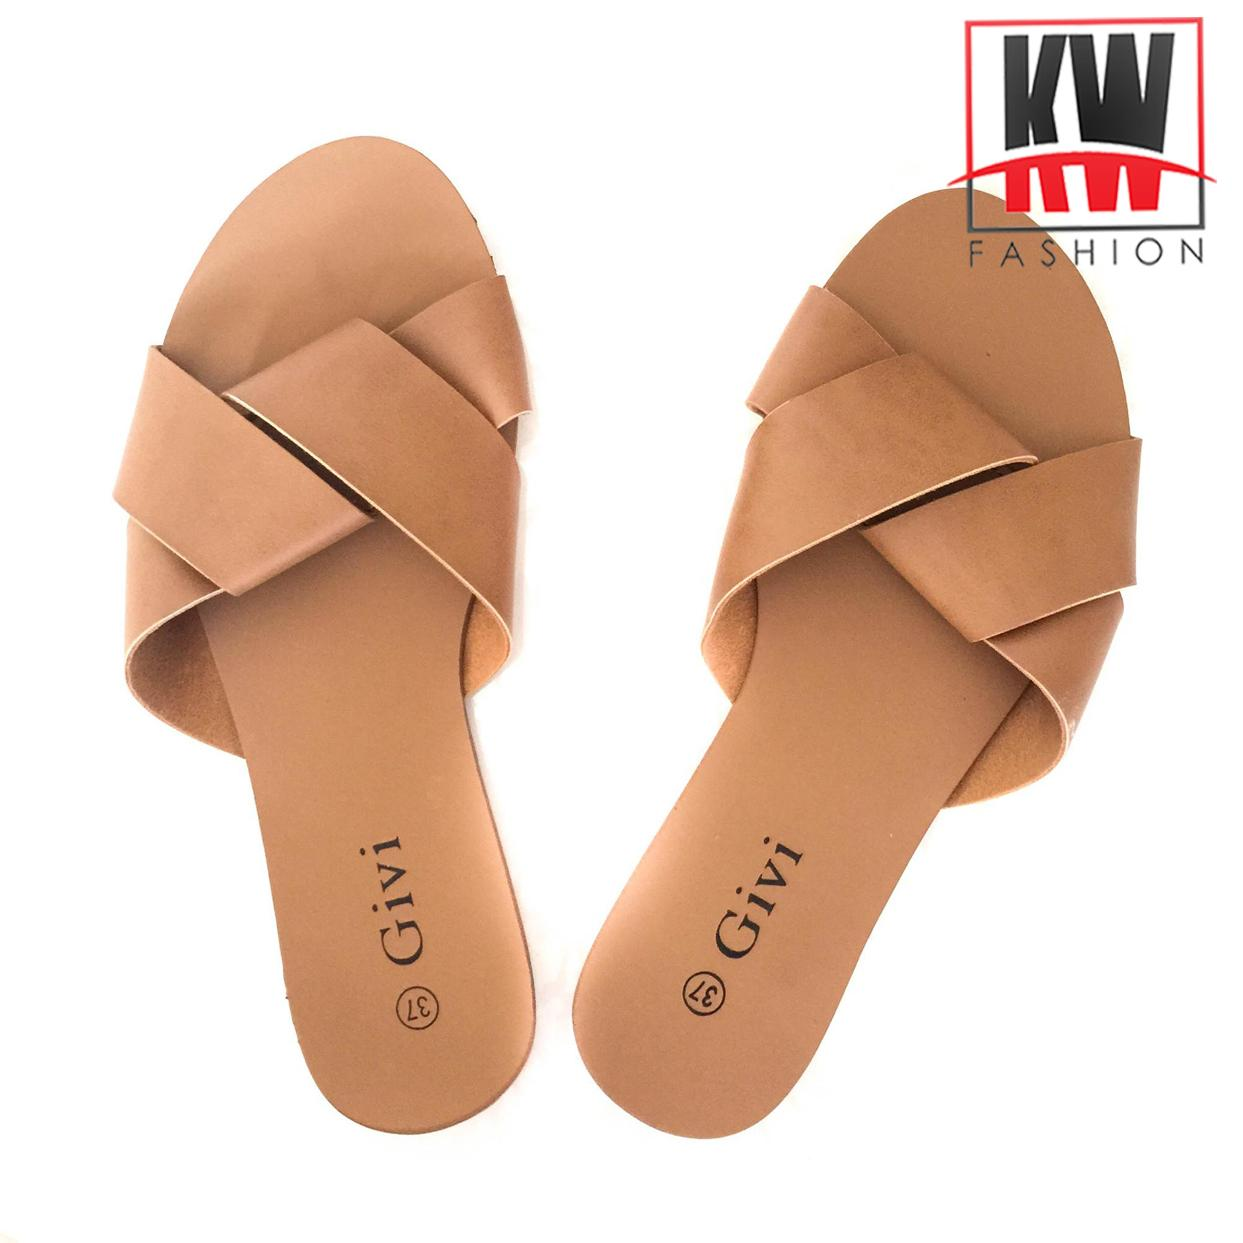 89fc95871bb60d Womens Sandals for sale - Ladies Sandals online brands